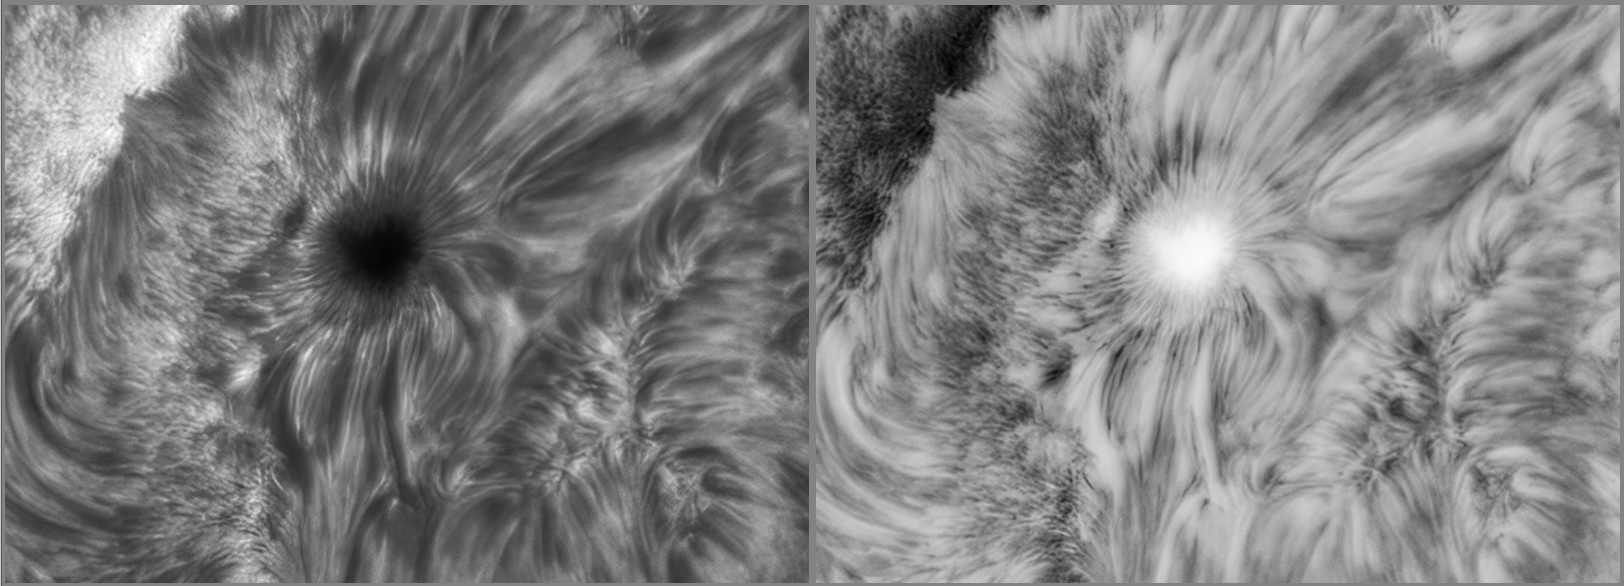 AR2824 Detail 2.png